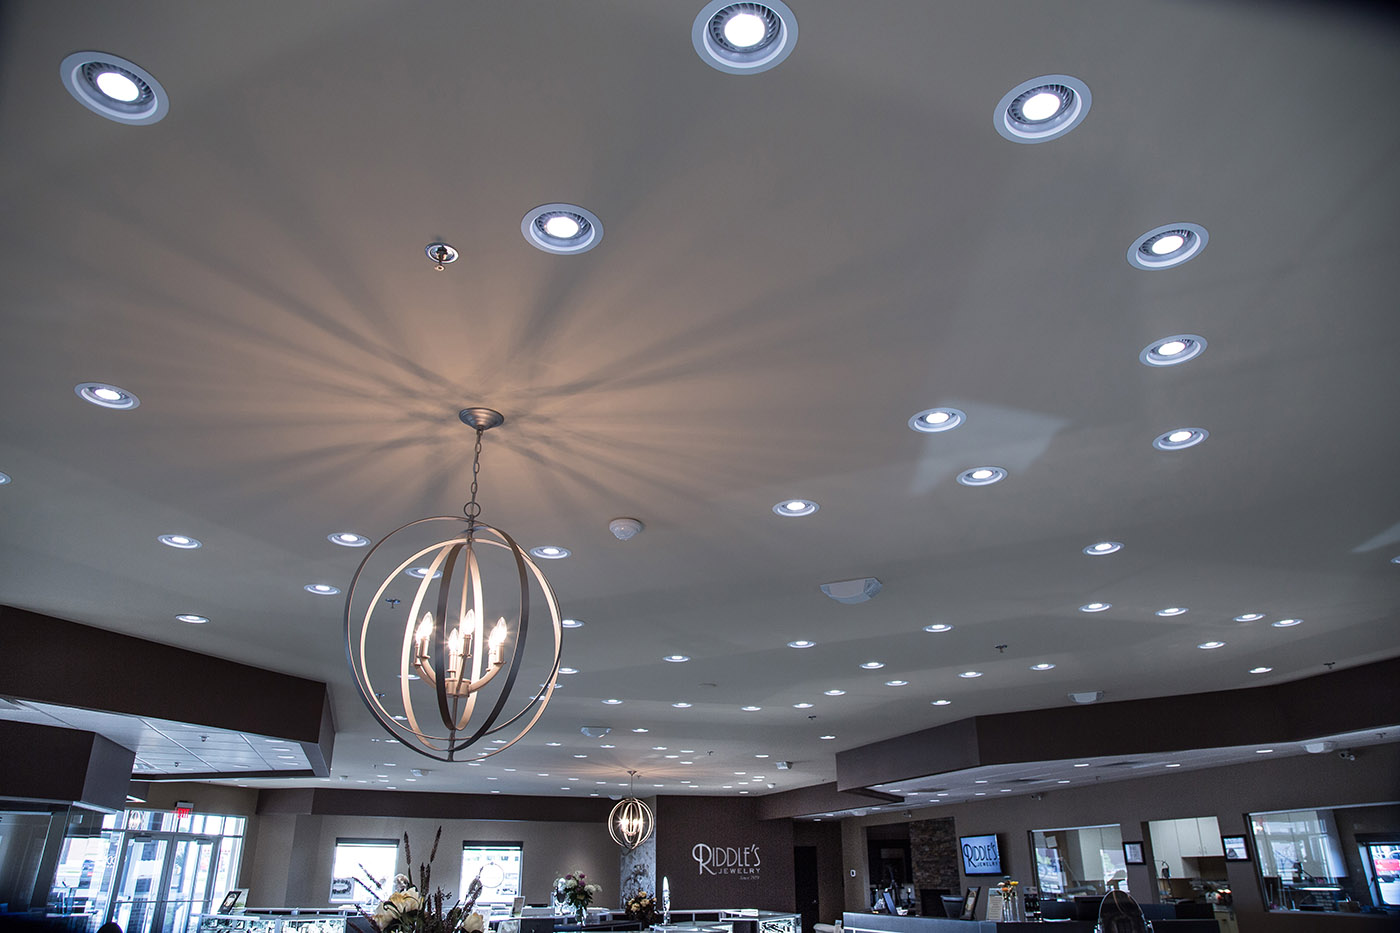 Ceiling Lighting Example for a Jewelry Store